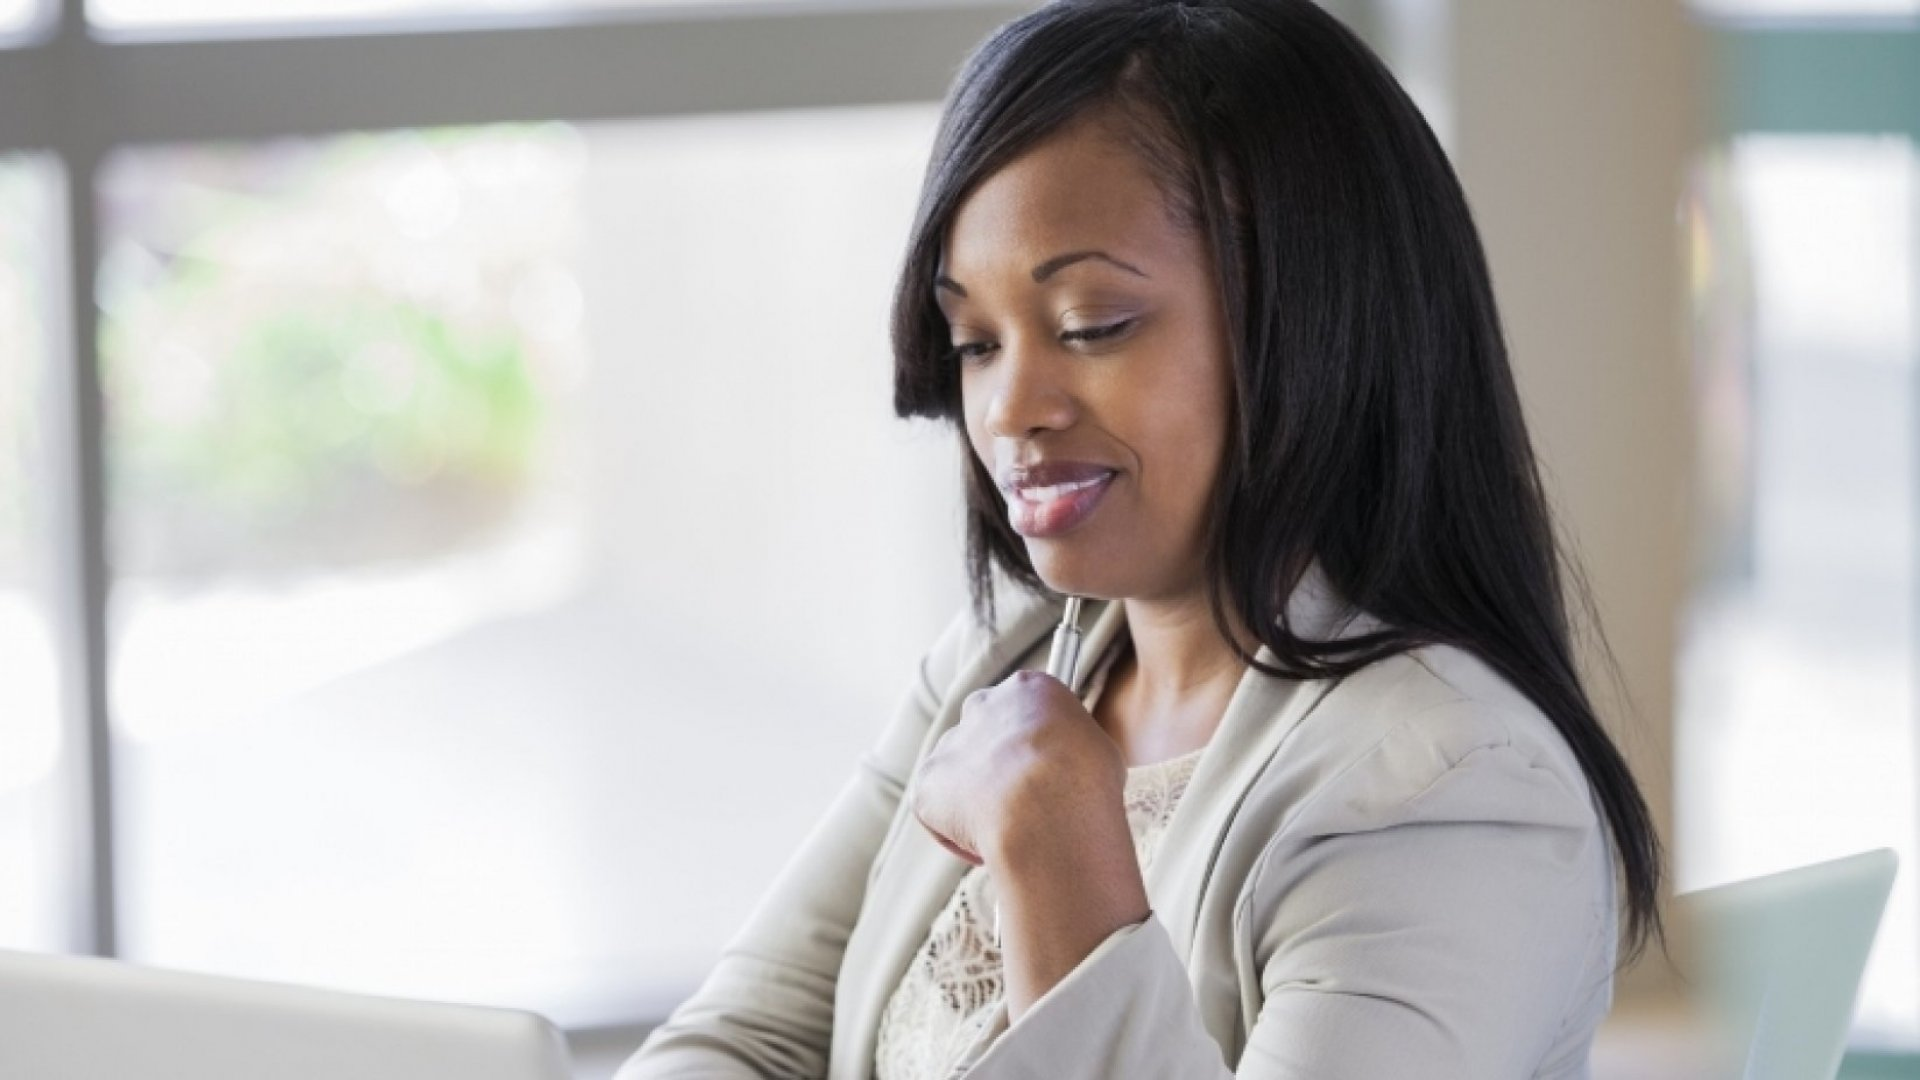 Black Women: Ready, Willing and More Than Able to Lead